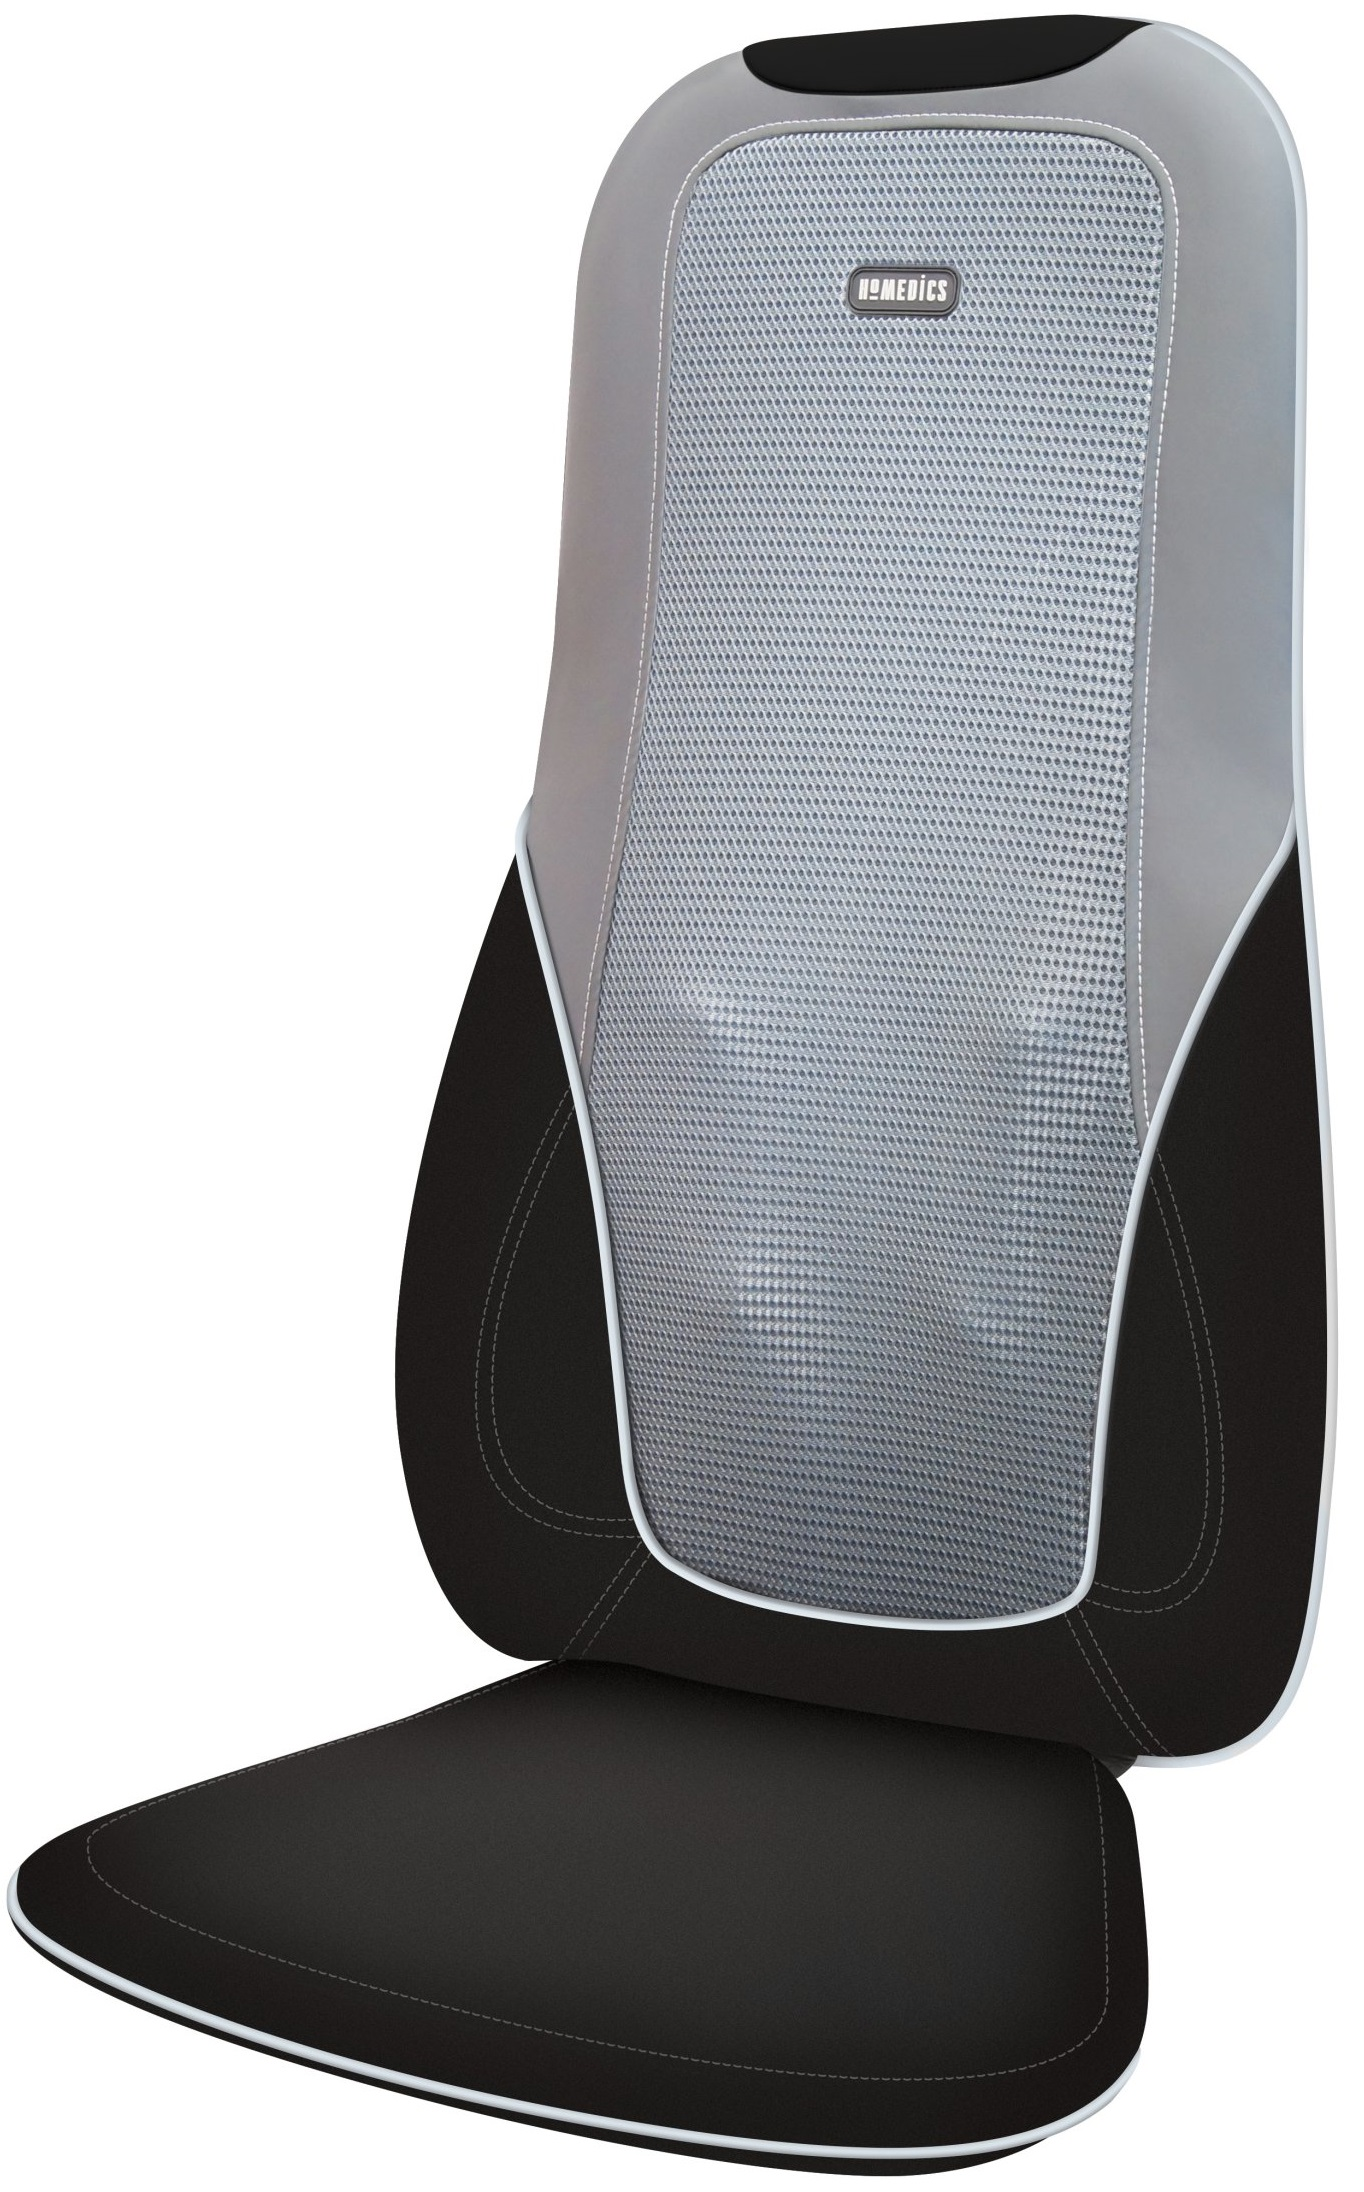 quad shiatsu massage cushion your personal masseuse